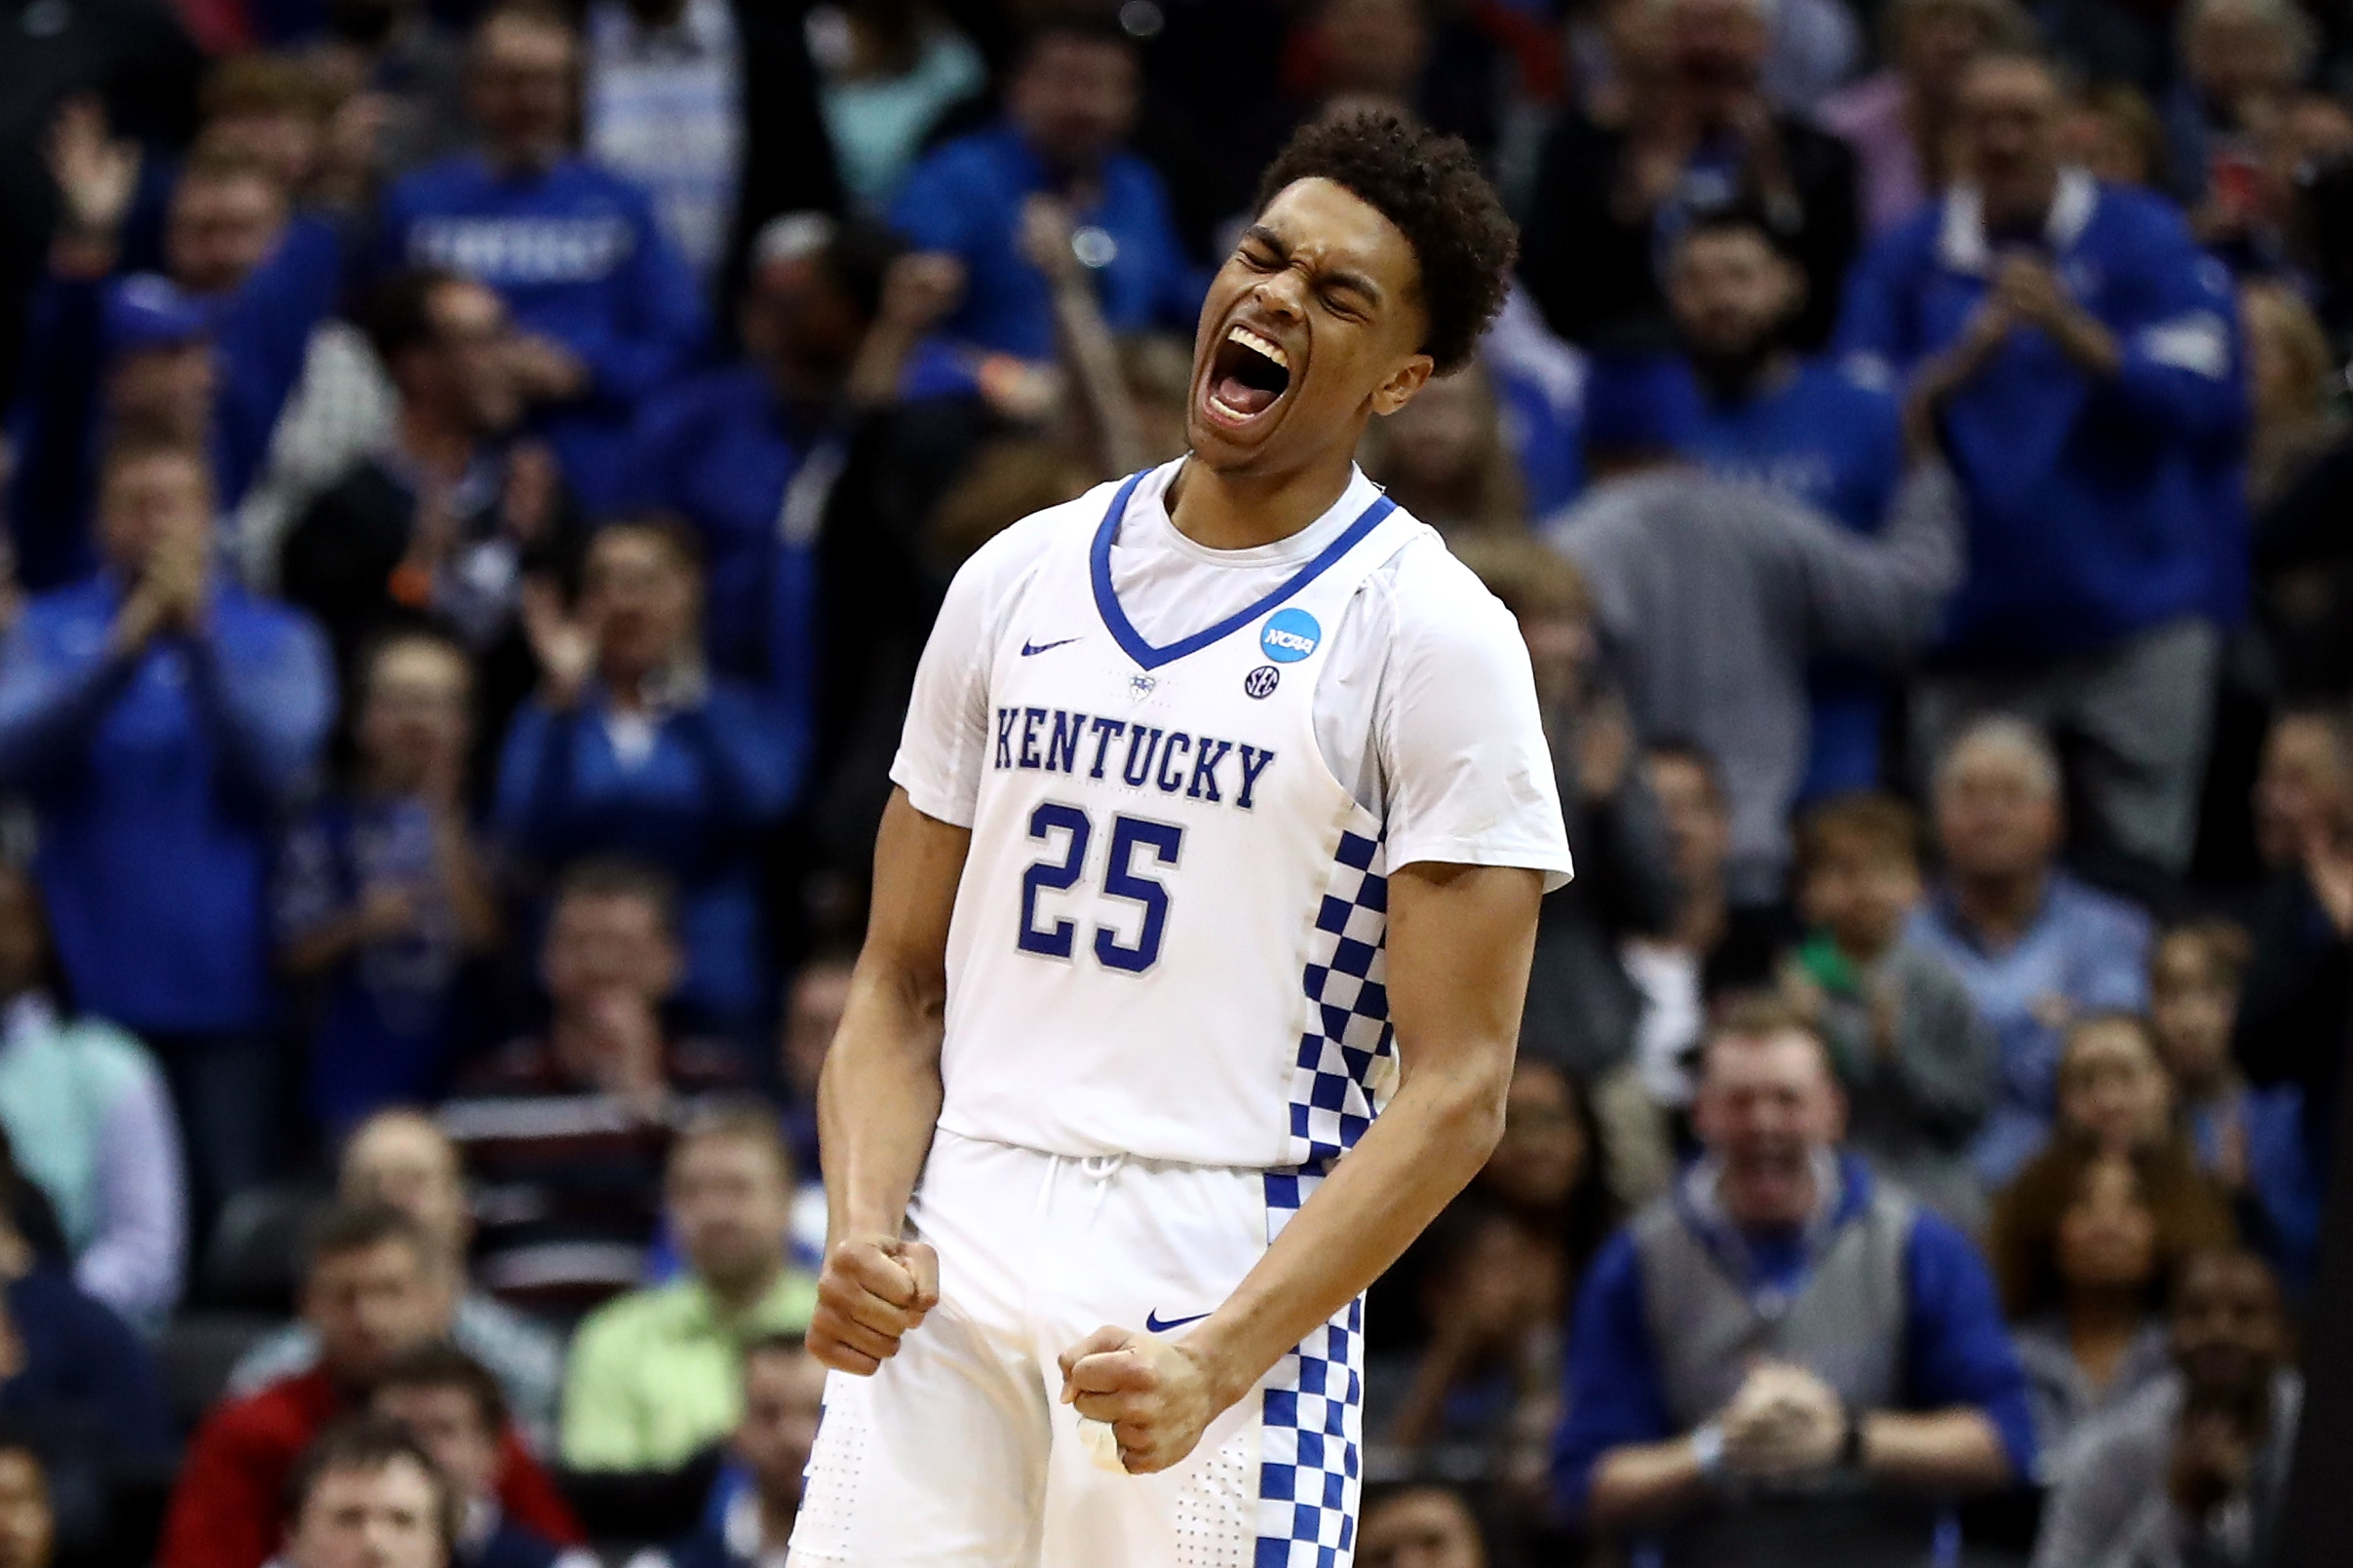 P.J. Washington's injury could derail Kentucky's Final Four hopes